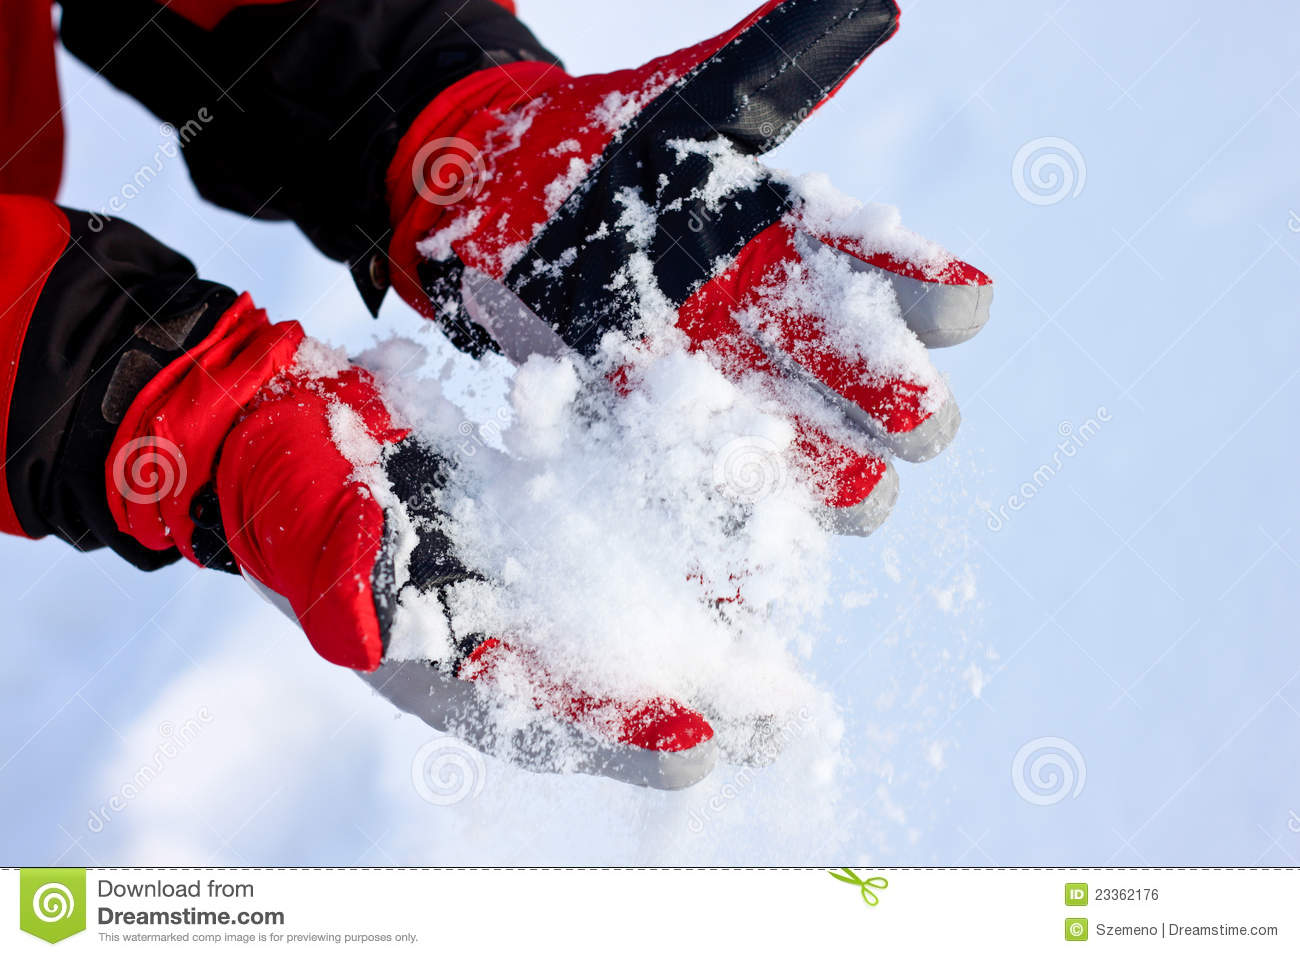 Gloves On Snow Royalty-Free Stock Photo | CartoonDealer